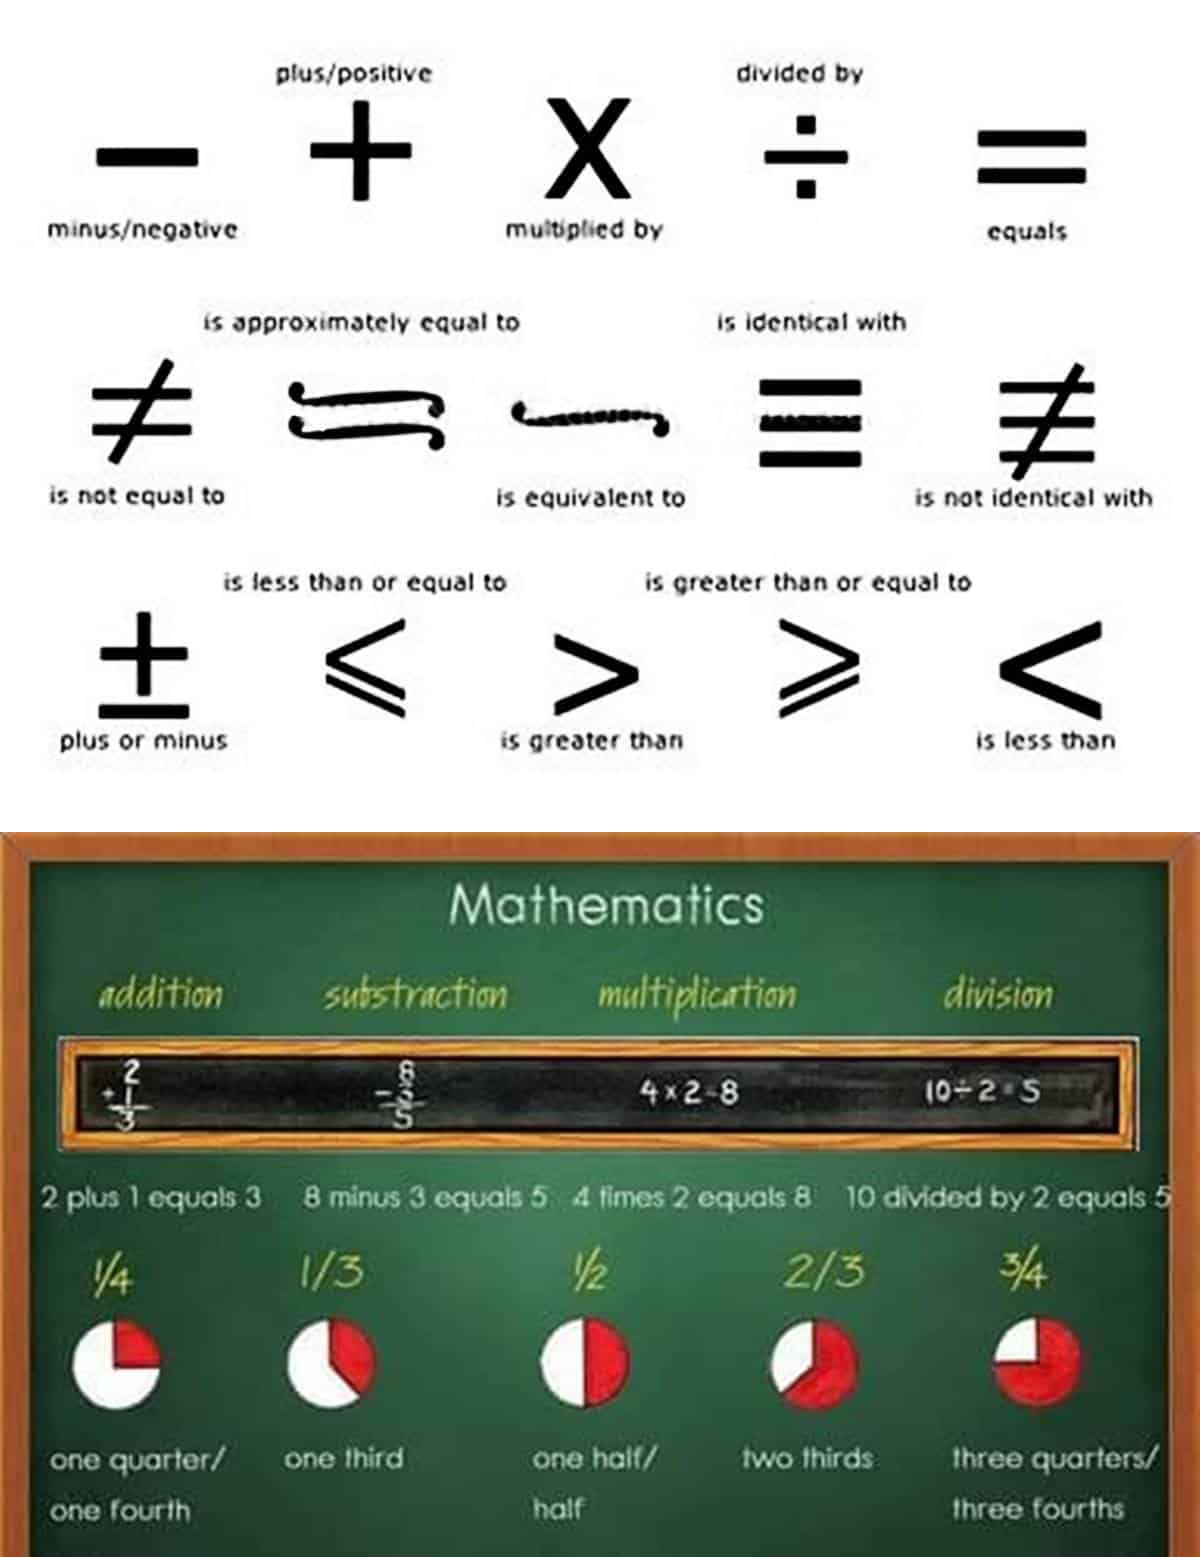 Punctuation Marks, Keyboard and Math Symbols in English 15